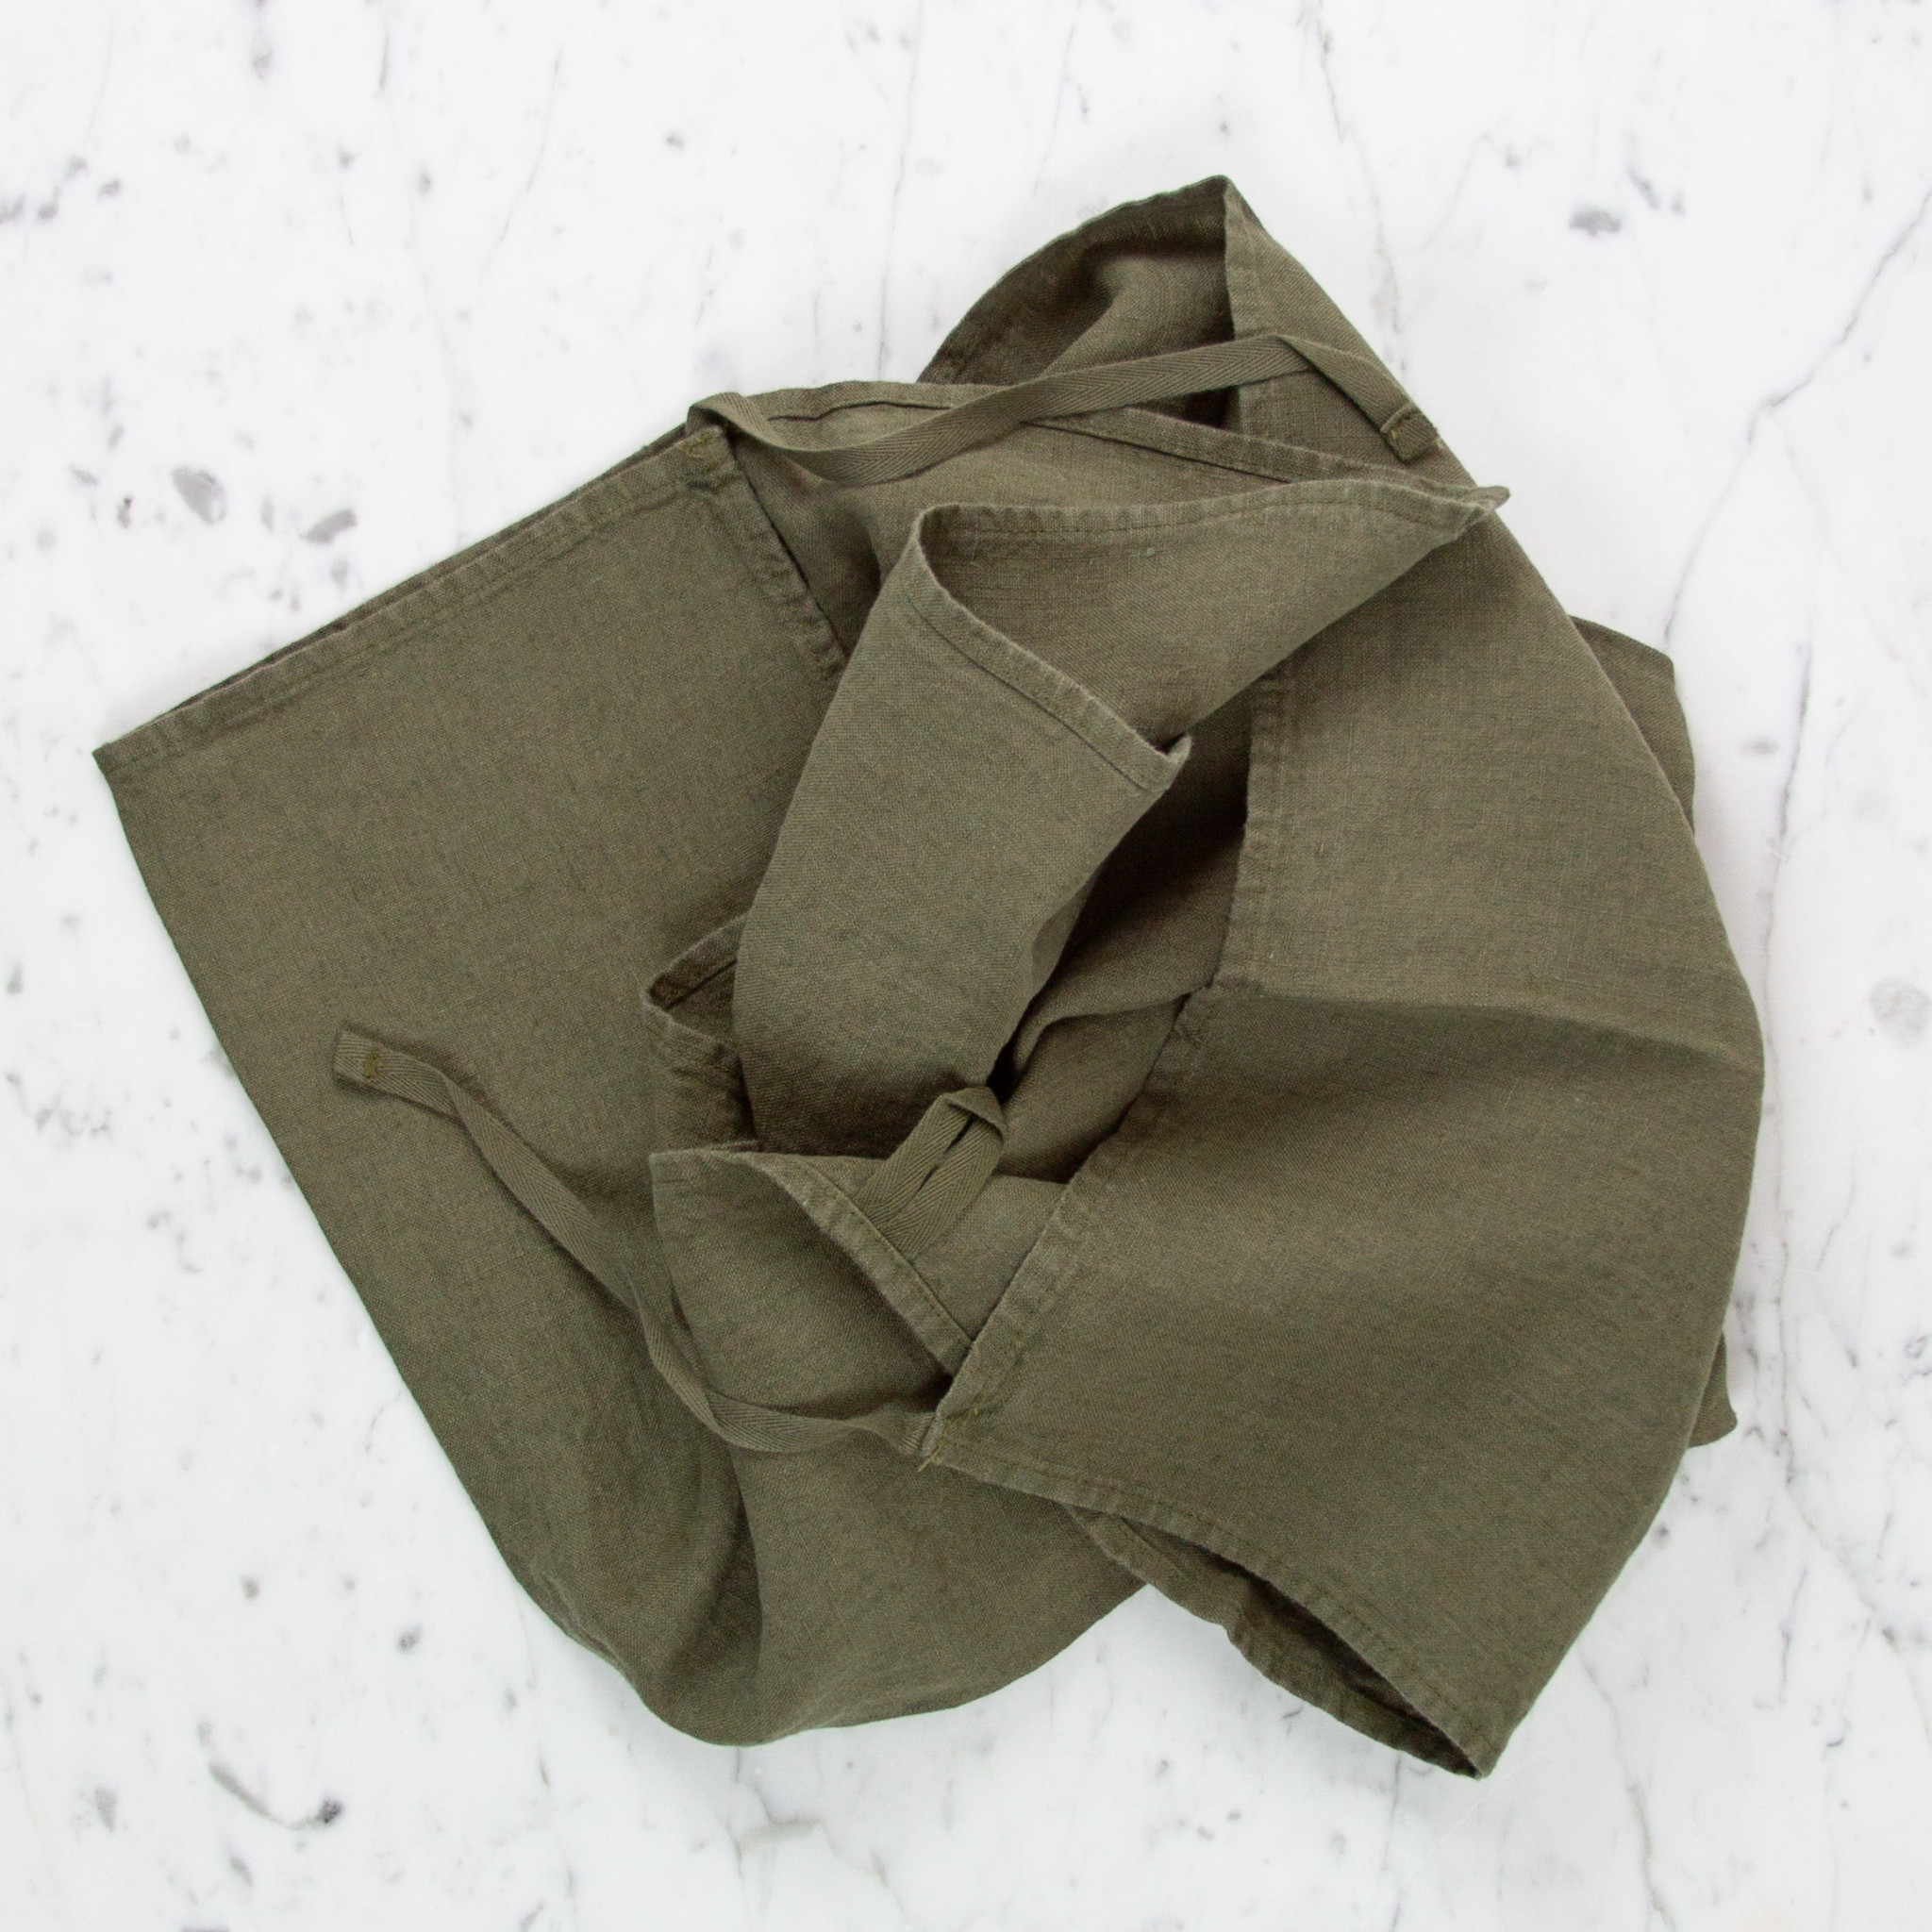 Washed French Linen Dish or Hand Towel with Hidden Apron Strings - Kaki